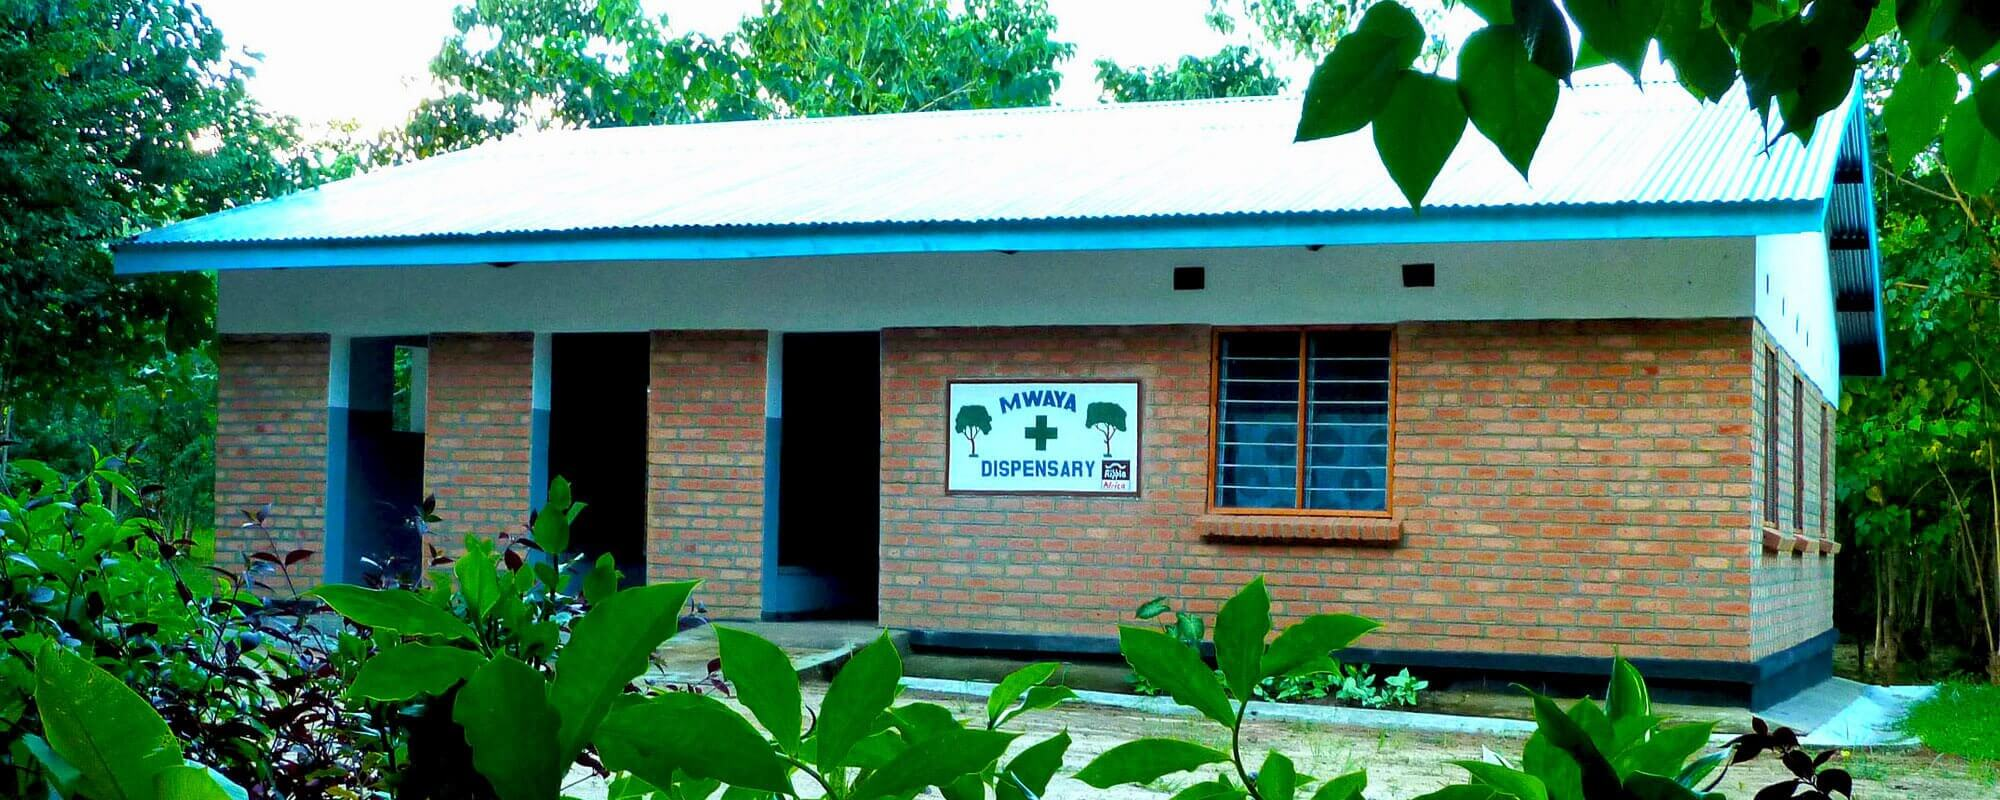 Mwaya Dispensary was built by Ripple Africa